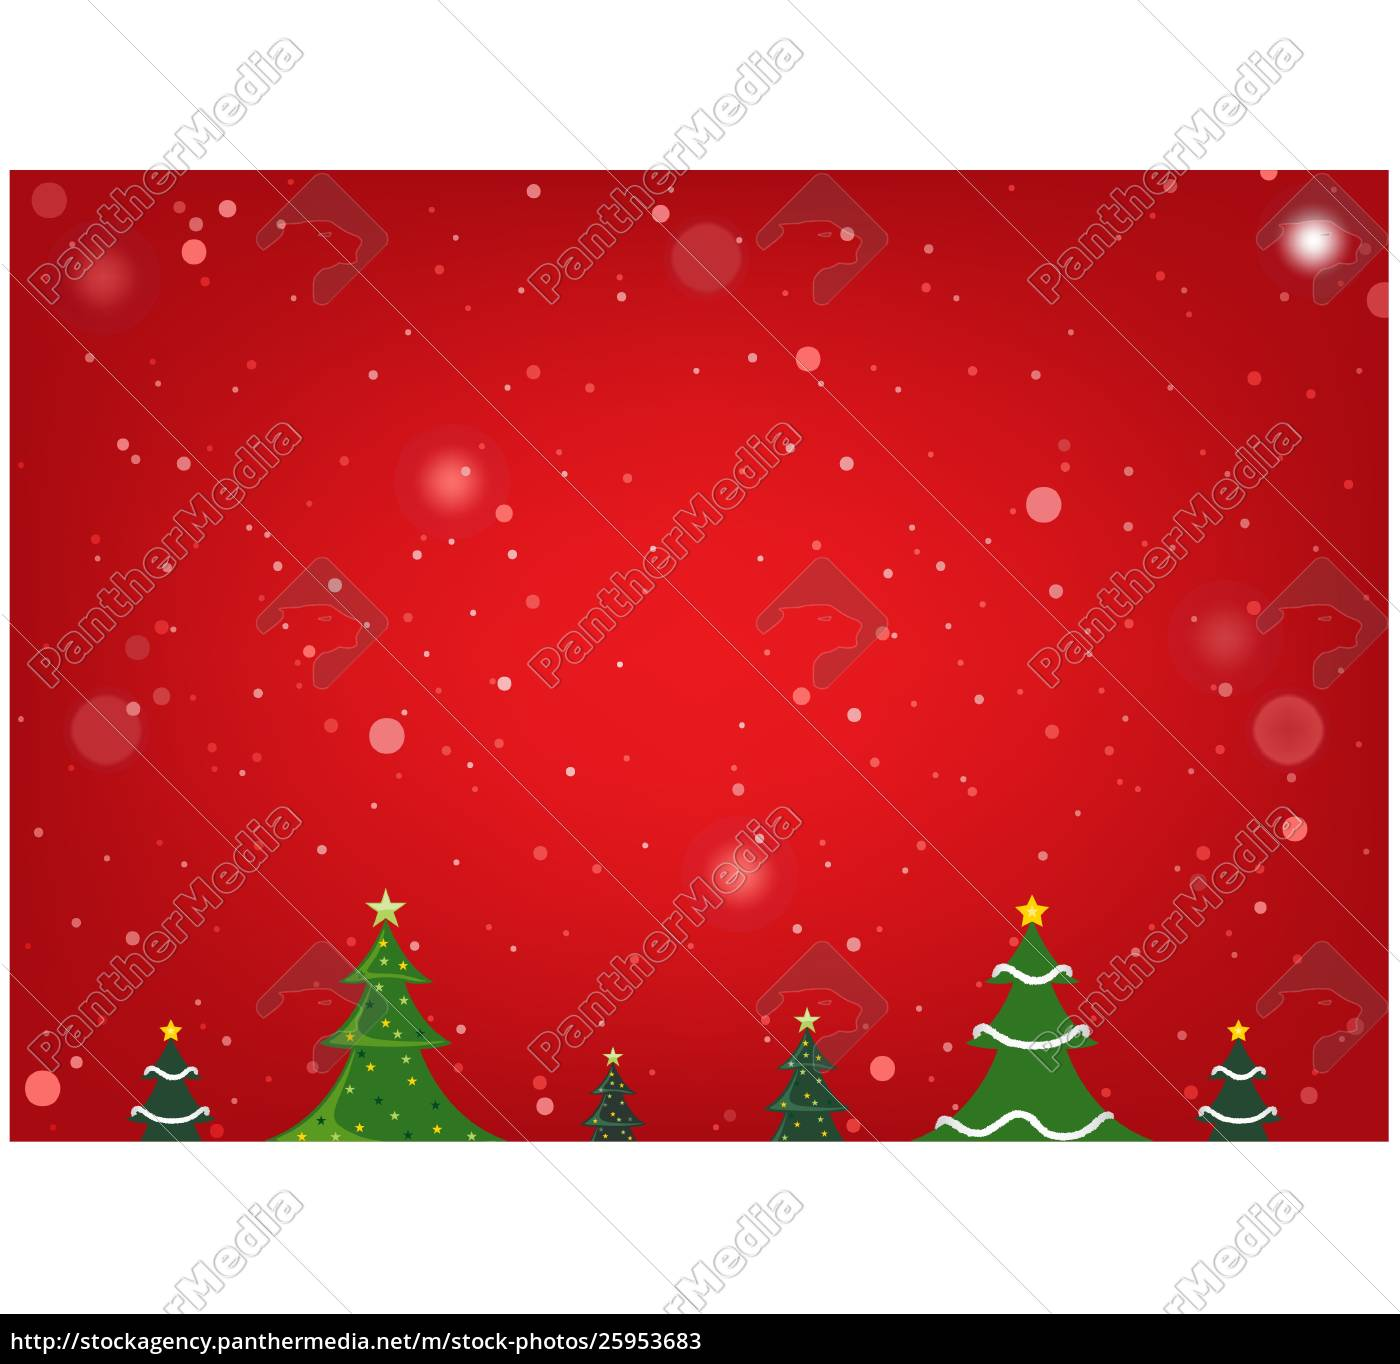 Christmas Background Images Free.Royalty Free Vector 25953683 Red Christmas Background With Xmas Trees